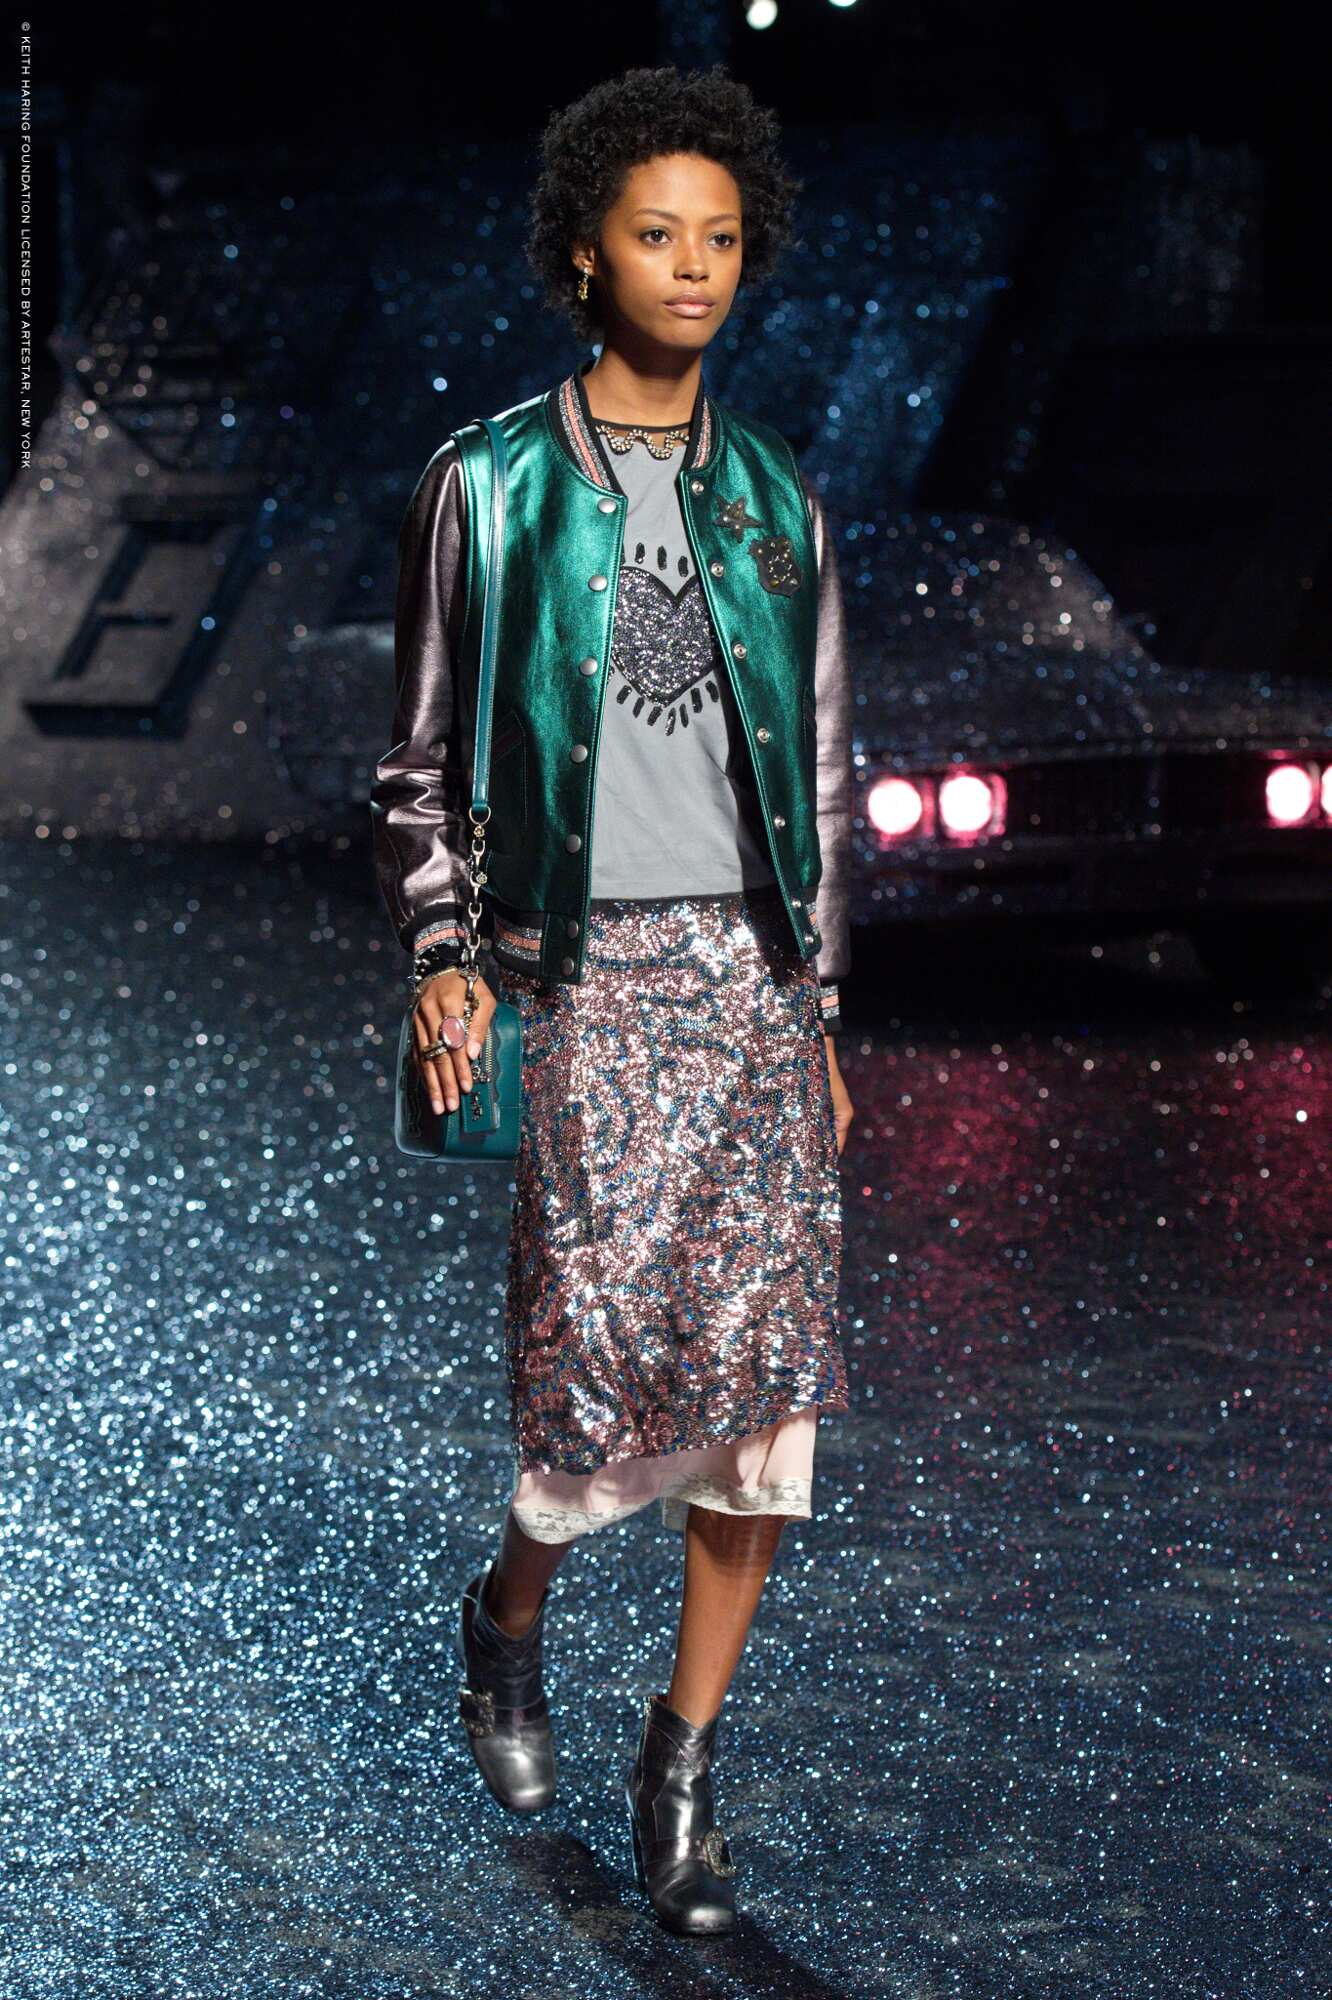 Coach 1941 Spring Summer 2018 Womens Collection New York Fashion Week